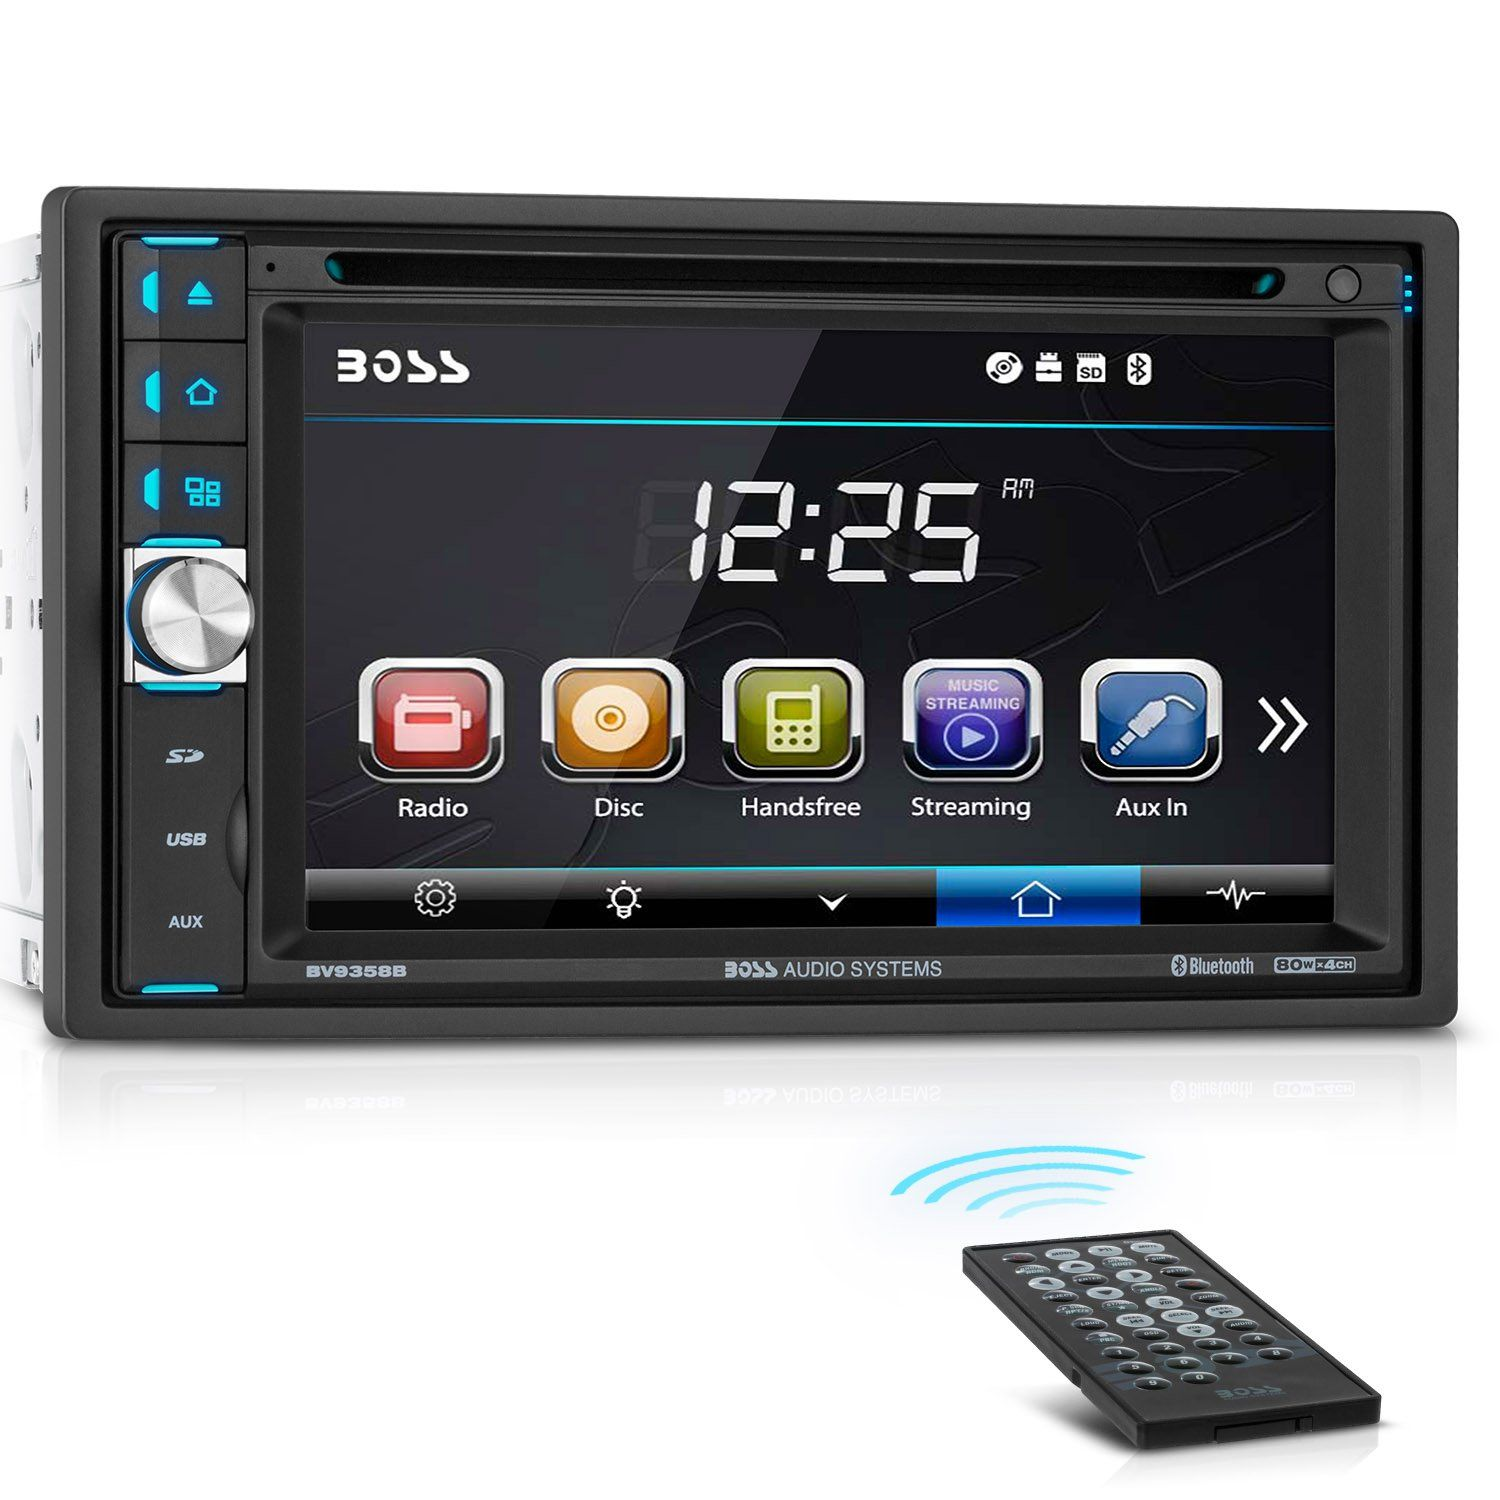 Boss Audio Bv9358b Car Dvd Player Double Din Bluetooth Audio And Calling 6 2 Inch Lcd Touchscreen Touch Screen Car Stereo Boss Audio Double Din Car Stereo